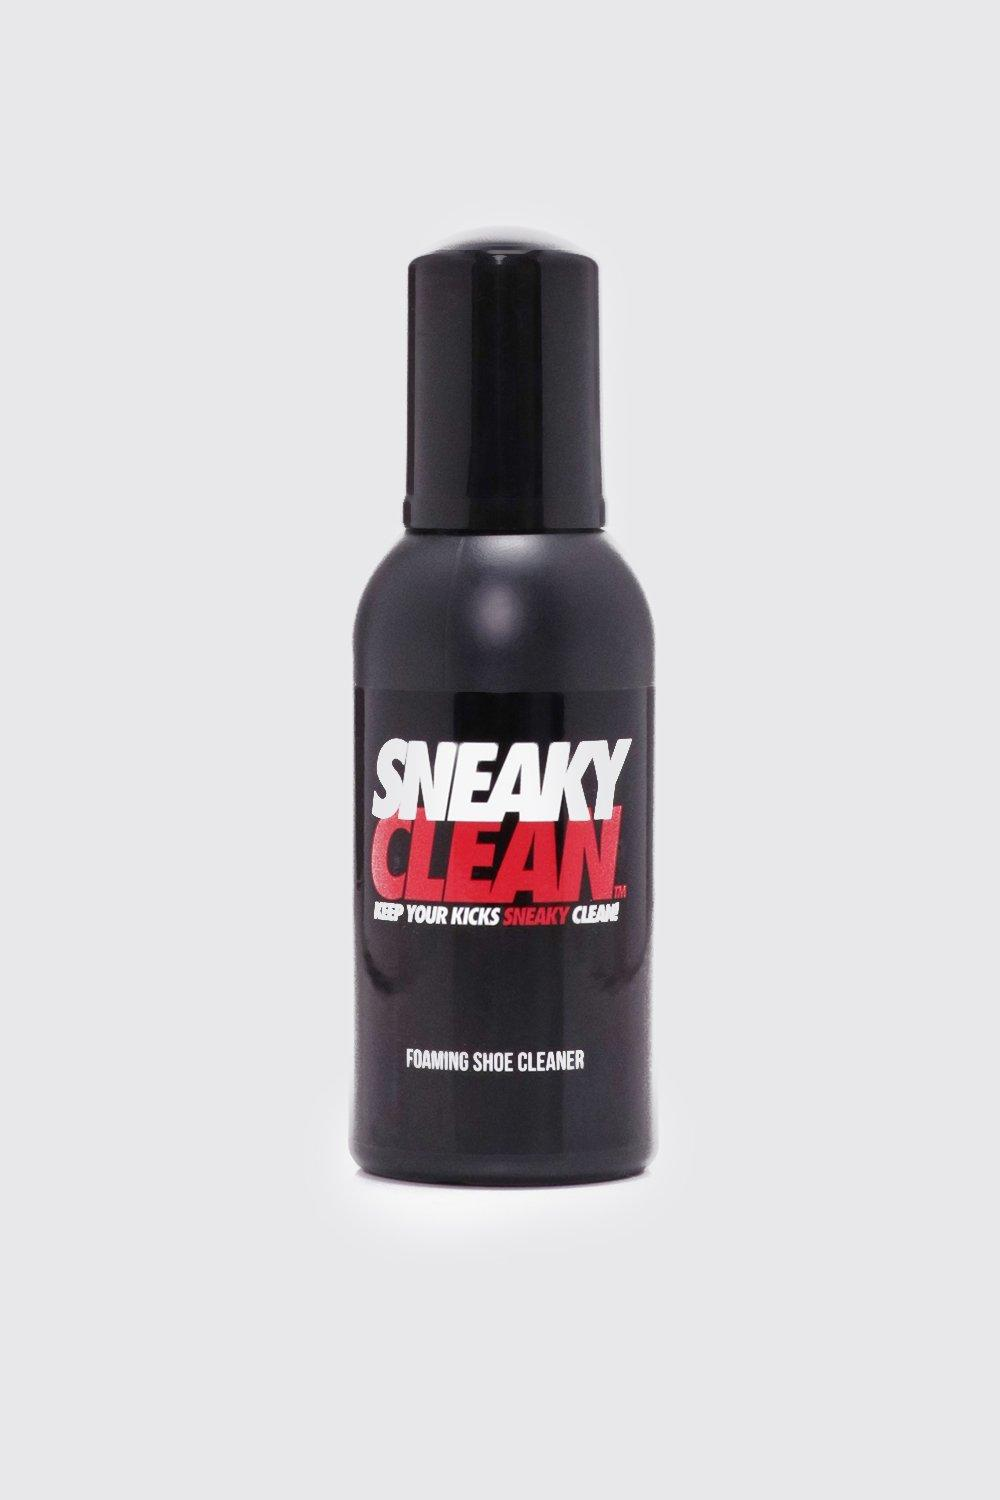 Clean Shoe Cleaner - black - Sneaky Clean Shoe Cle